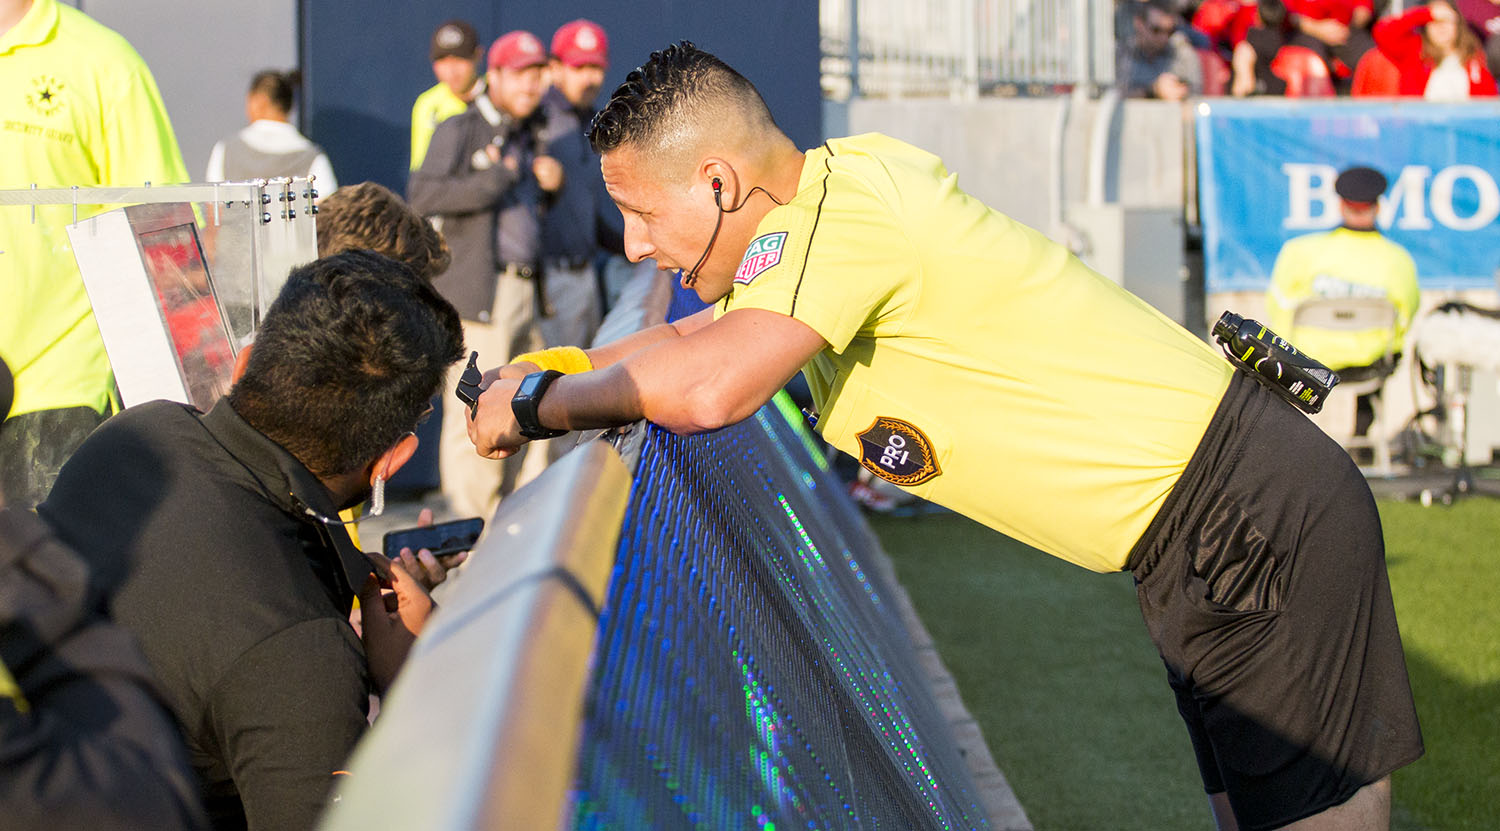 Referee Jose Carlos Rivero check the call by Video Assistant Referee Yusri Rudolf that would result in a red card during the first Video Review at BMO Field. Image by Dennis Marciniak of denMAR Media.